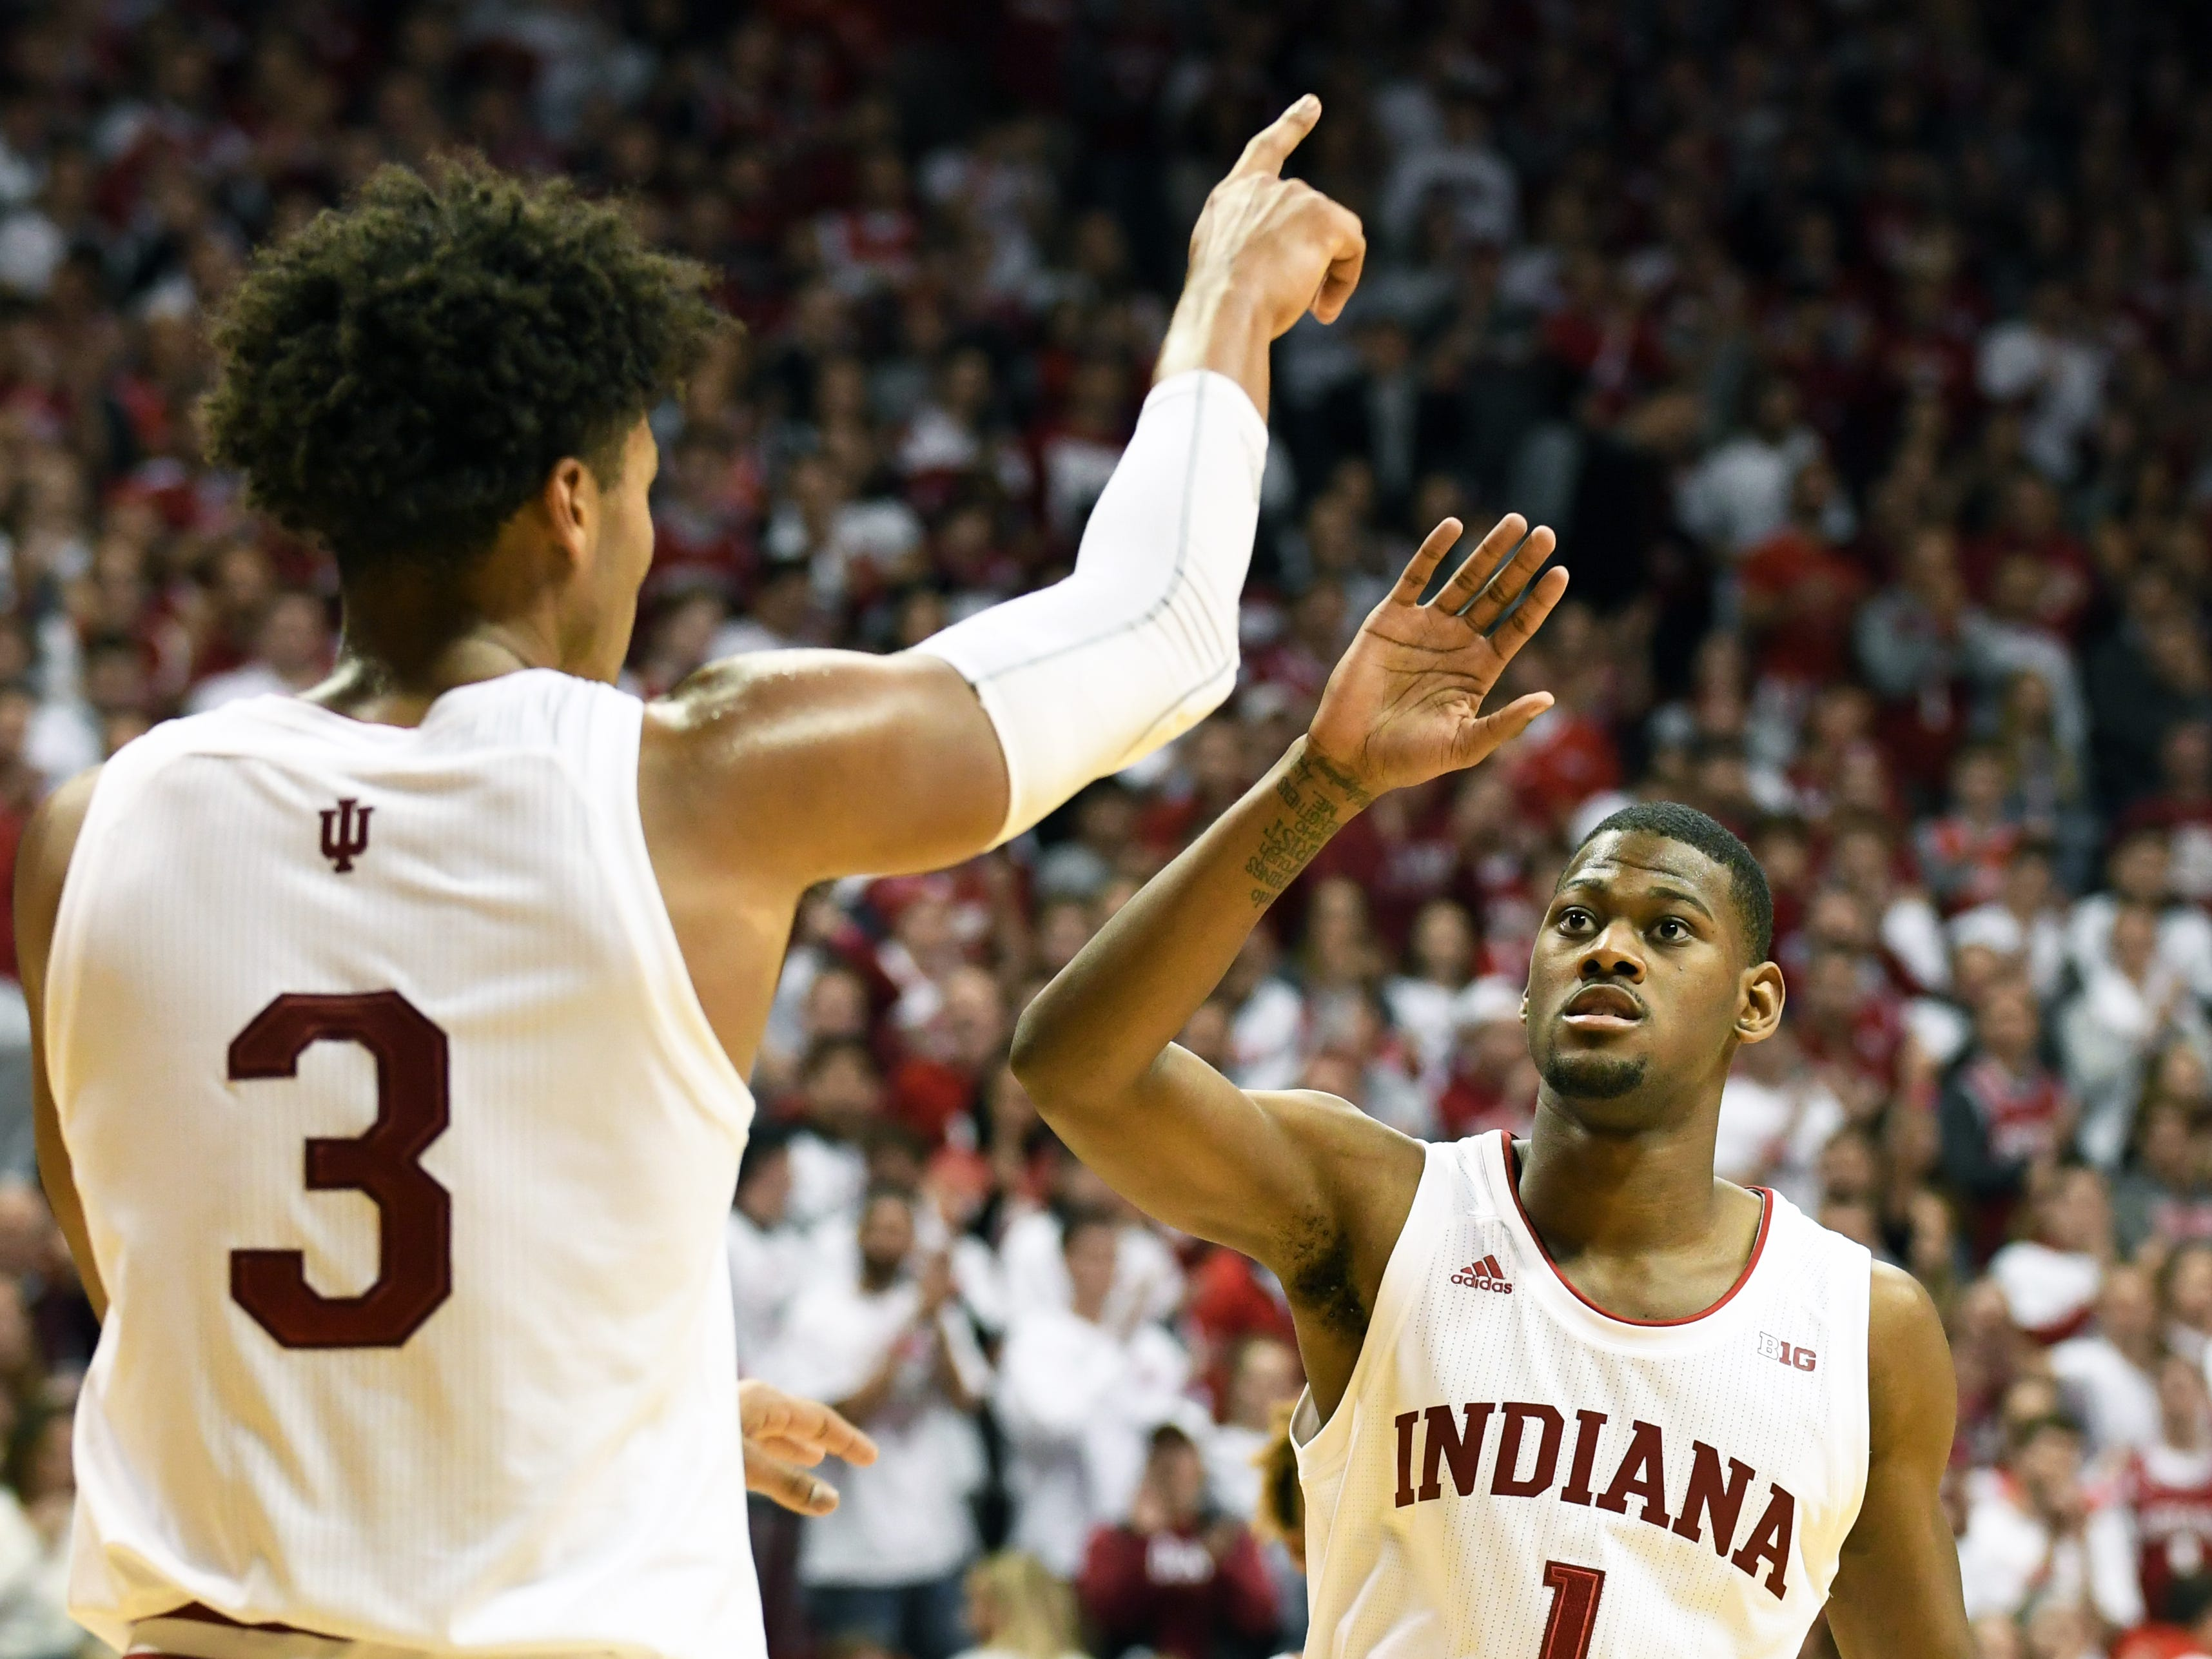 Indiana Hoosiers forward Justin Smith (3) and Indiana Hoosiers guard Al Durham (1) celebrate after a play during the game against Louisville at Simon Skjodt Assembly Hall in Bloomington, Ind.